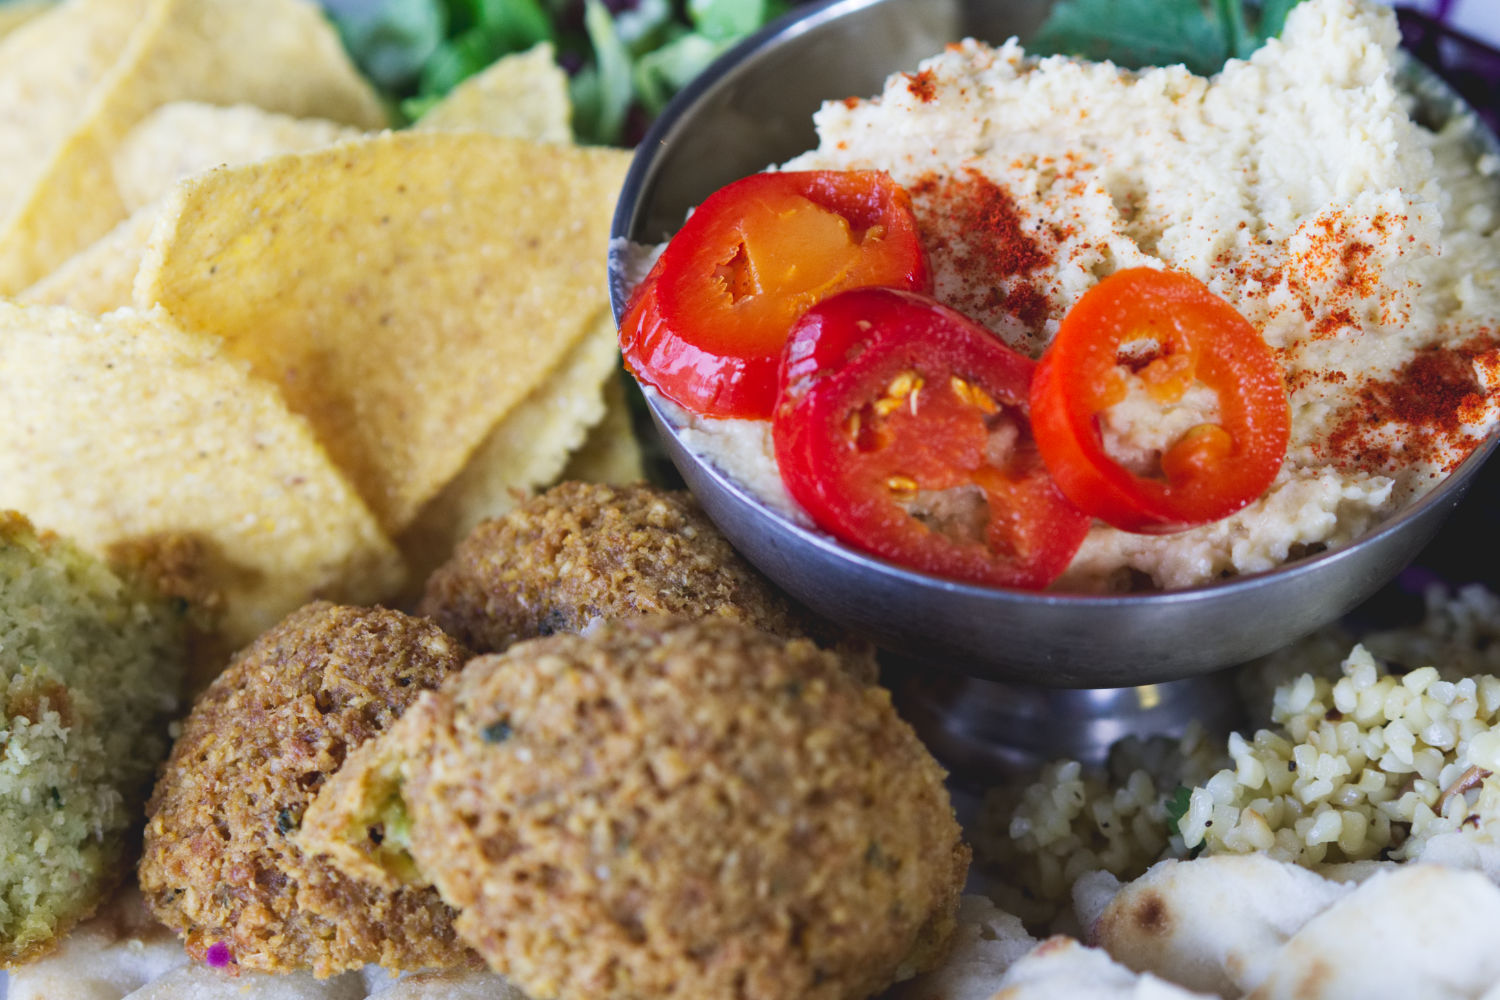 Vegan falafel meal at the Forest café Edinburgh